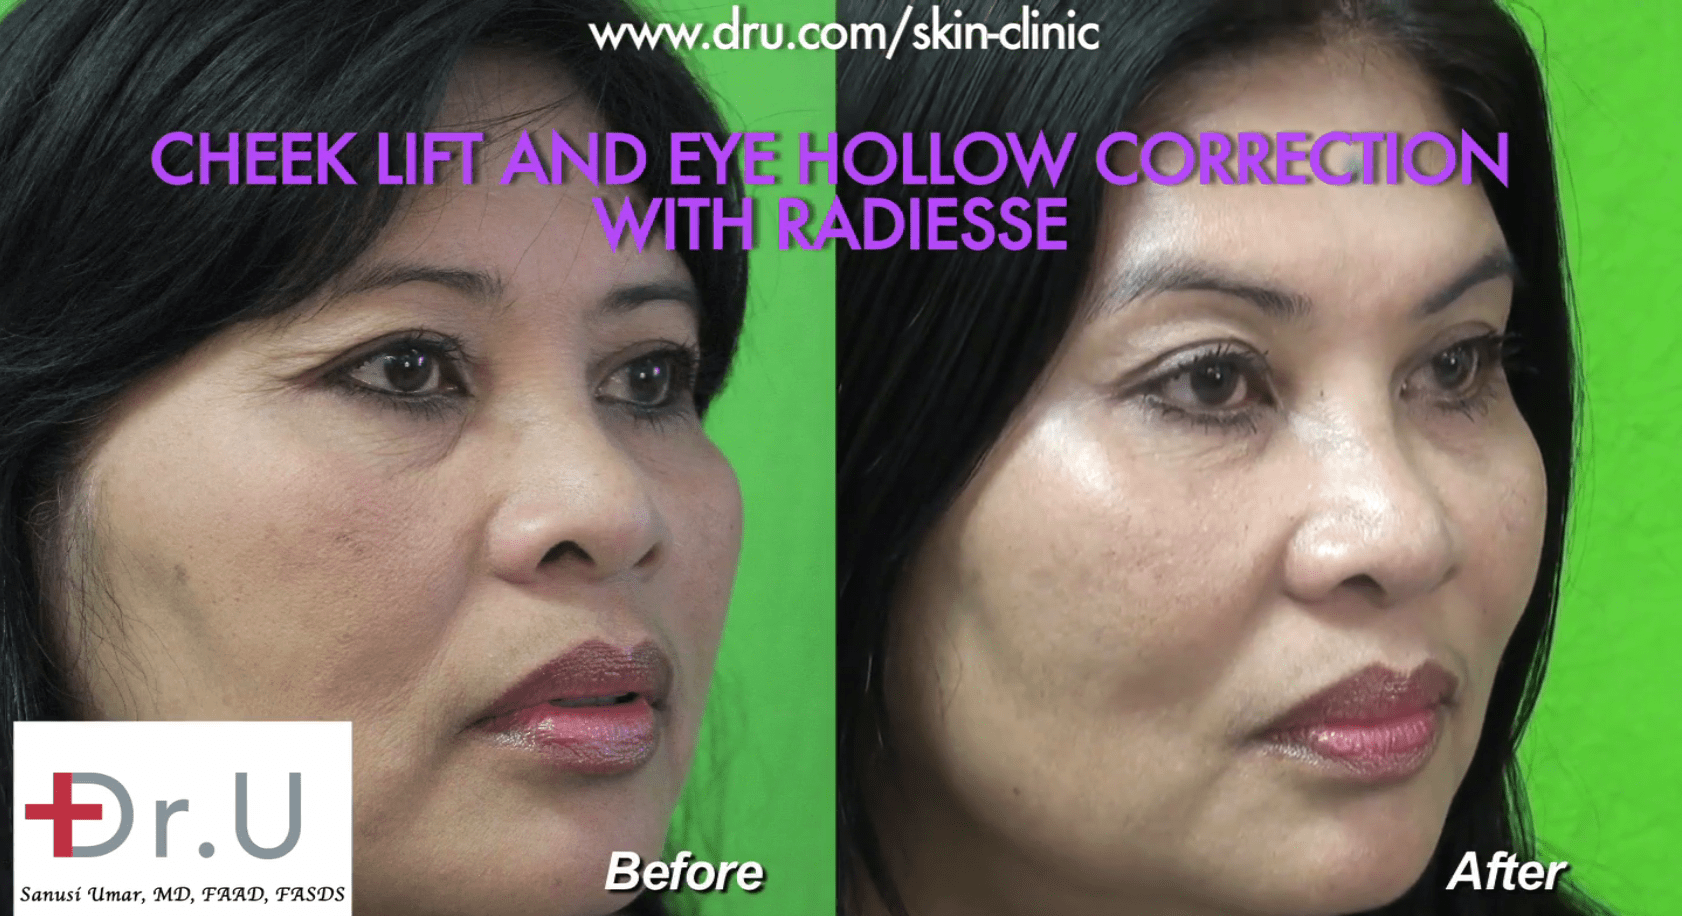 The patient before and after Dr. U performed a non surgical cheek lift and hollow eye treatment using Radiesse.*